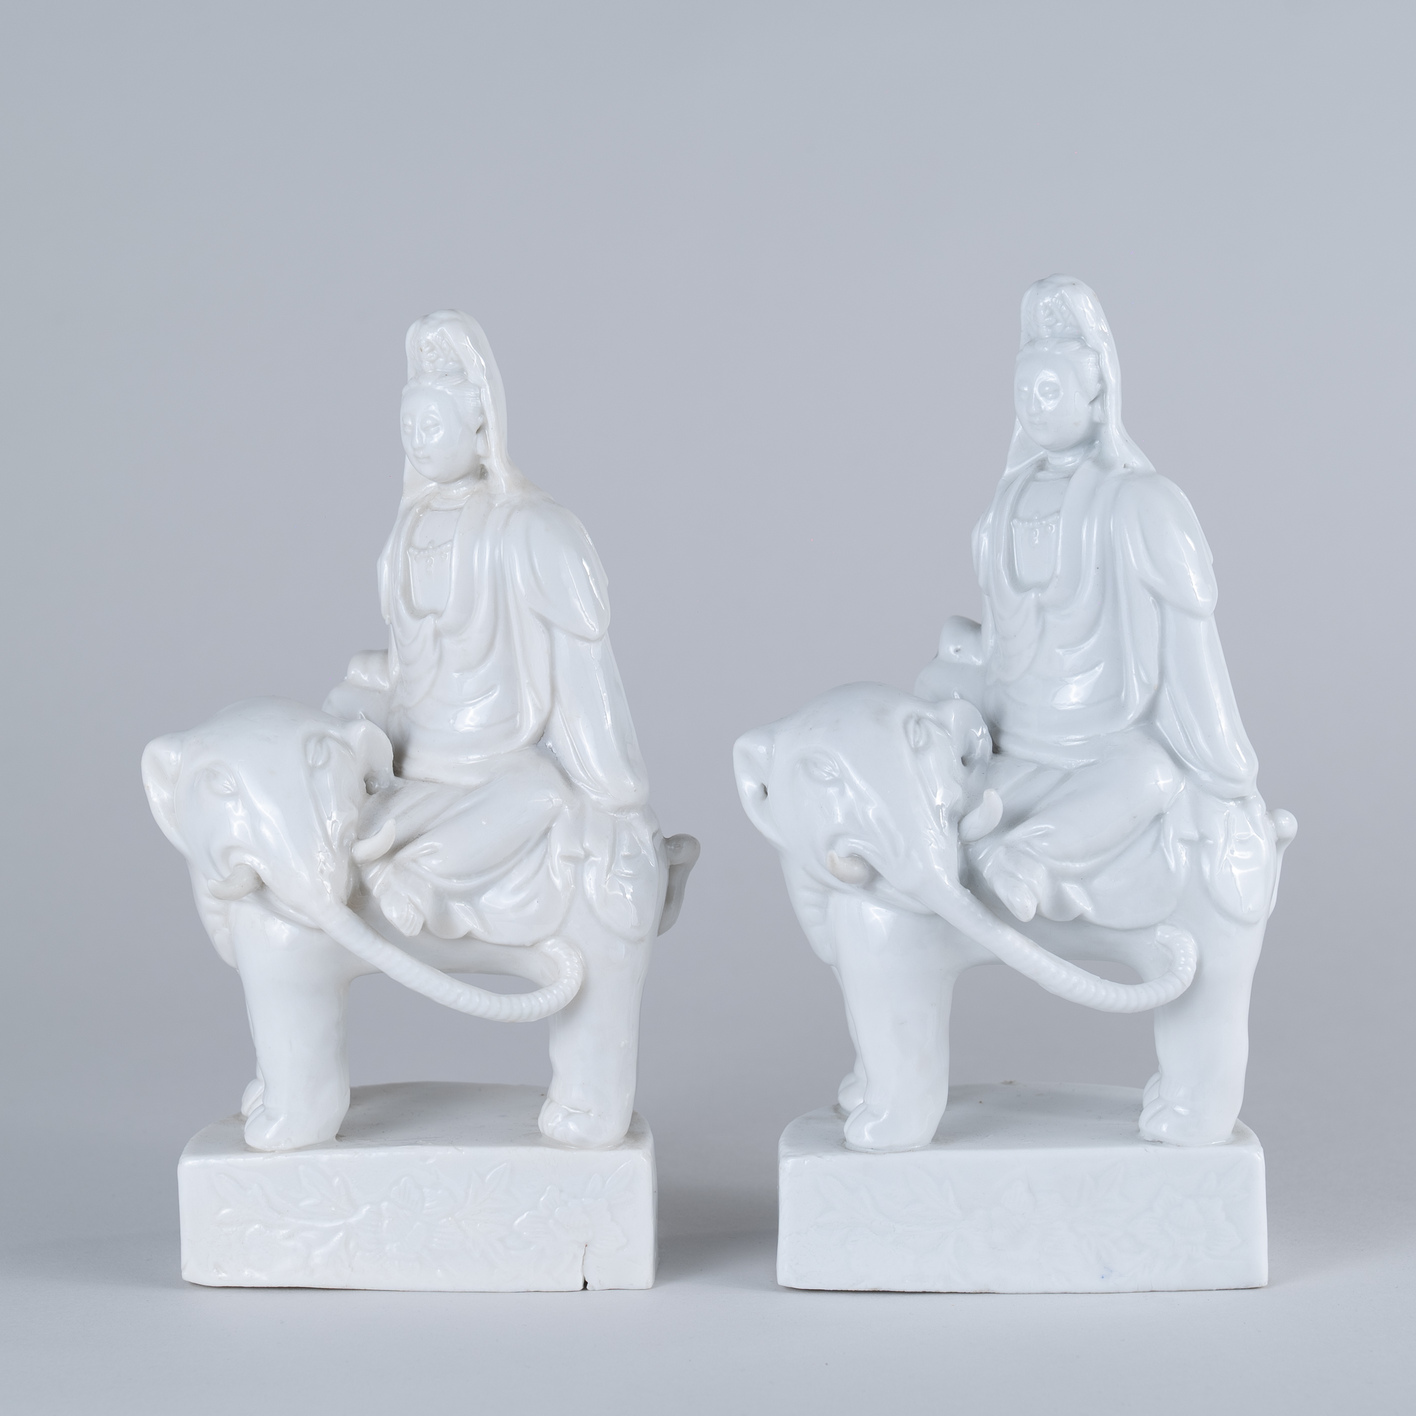 18th Century Pair of Blanc de Chine Guanyin Figure